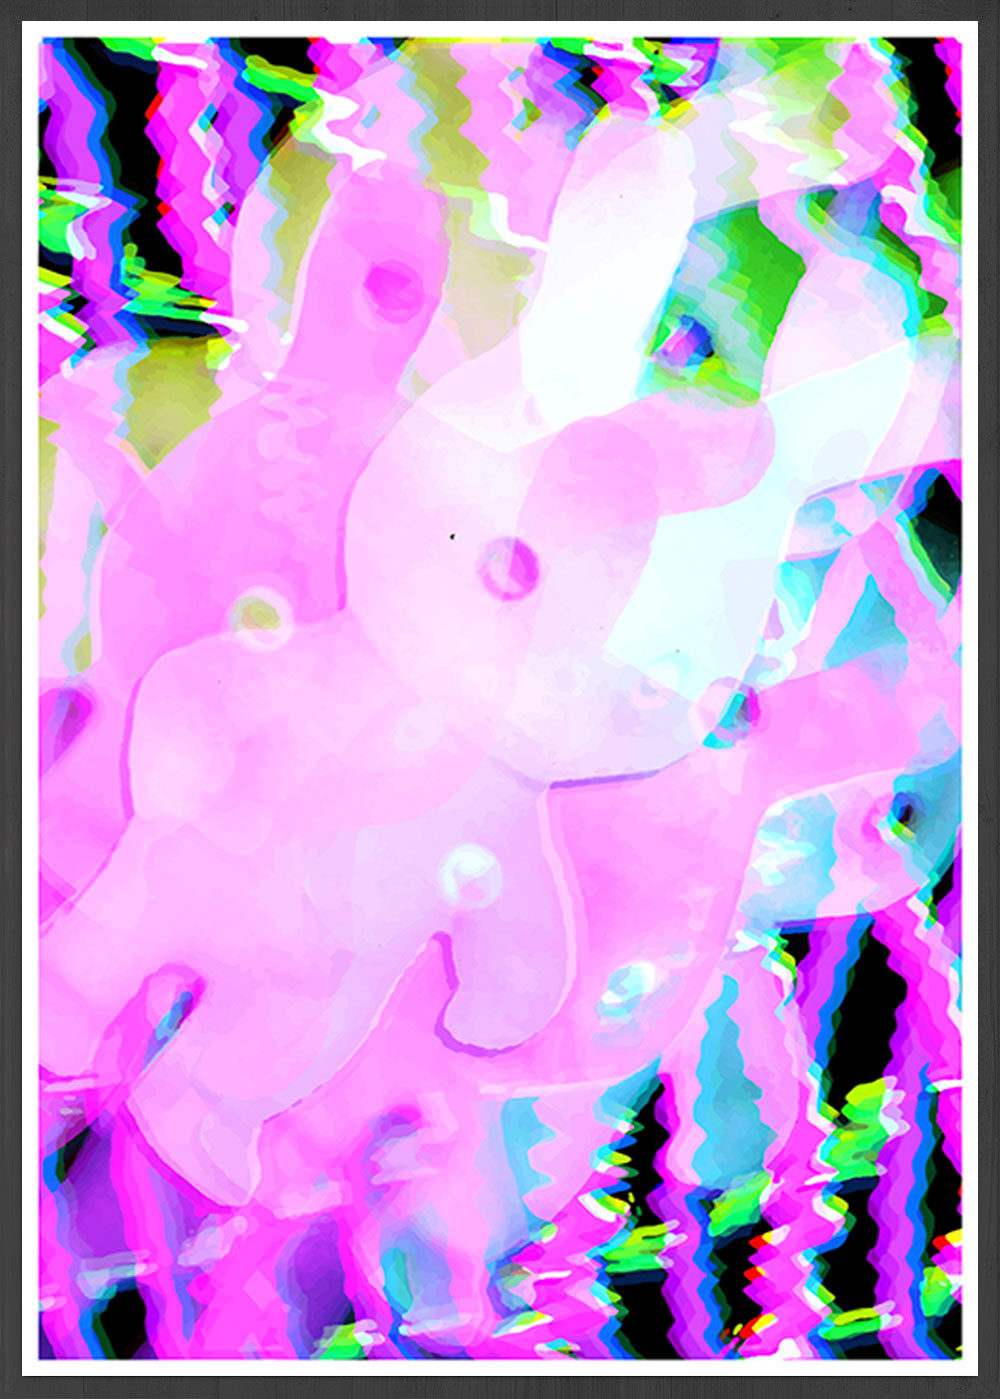 Bunny Pop Pink Abstract Print in a frame